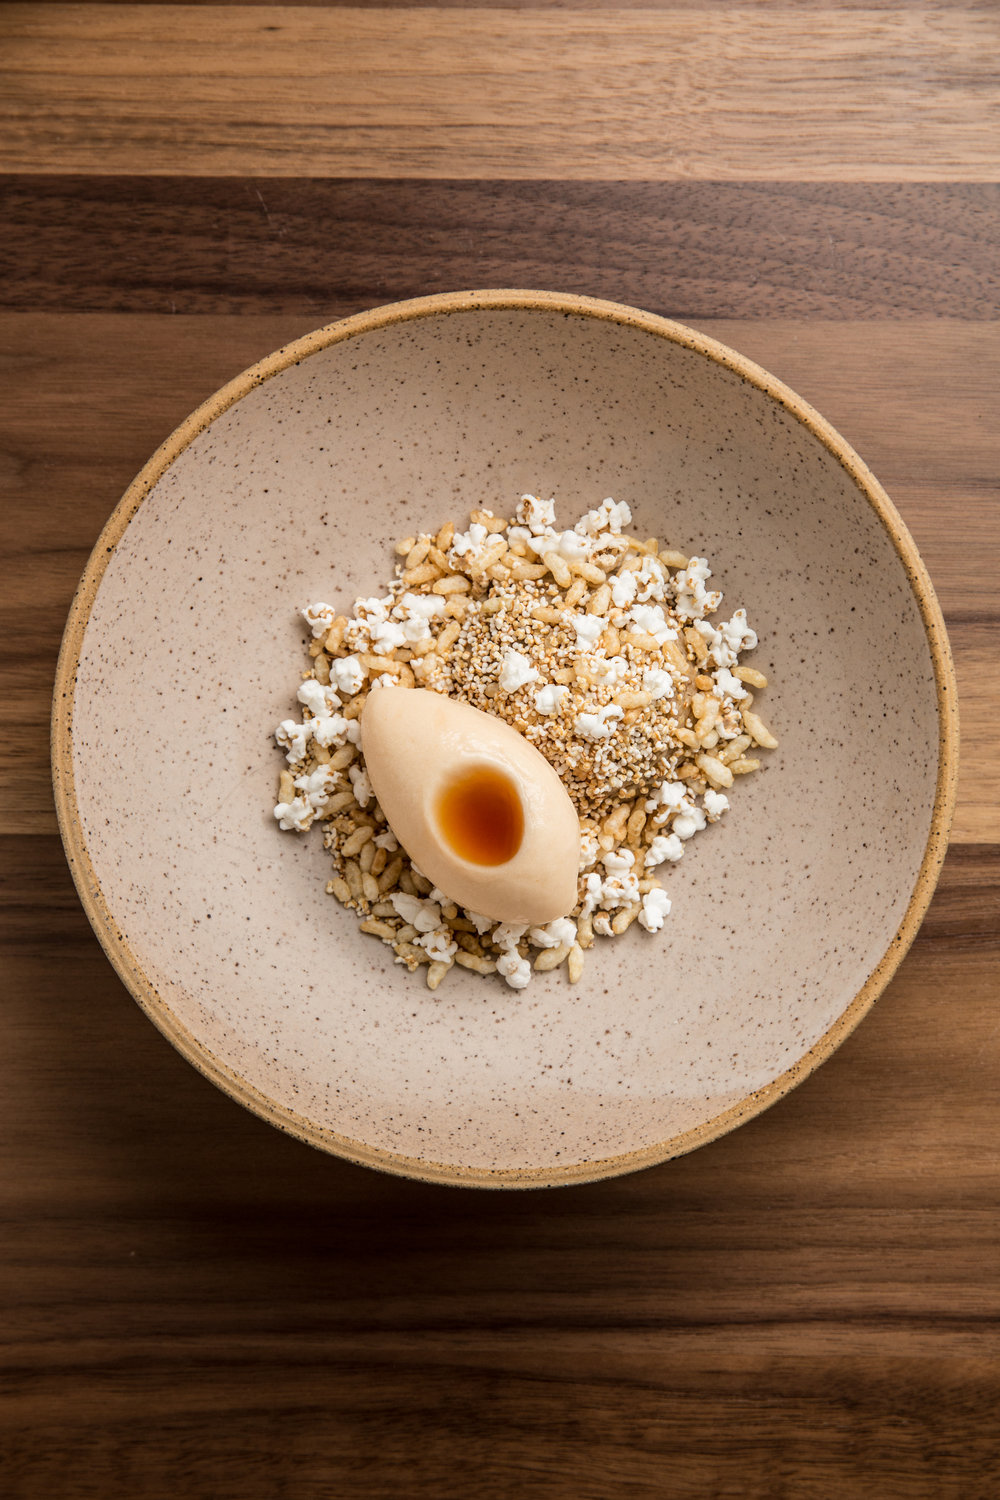 Elske - Rye Bread Porridge with quince sorbet and puffed cereals 2.jpg